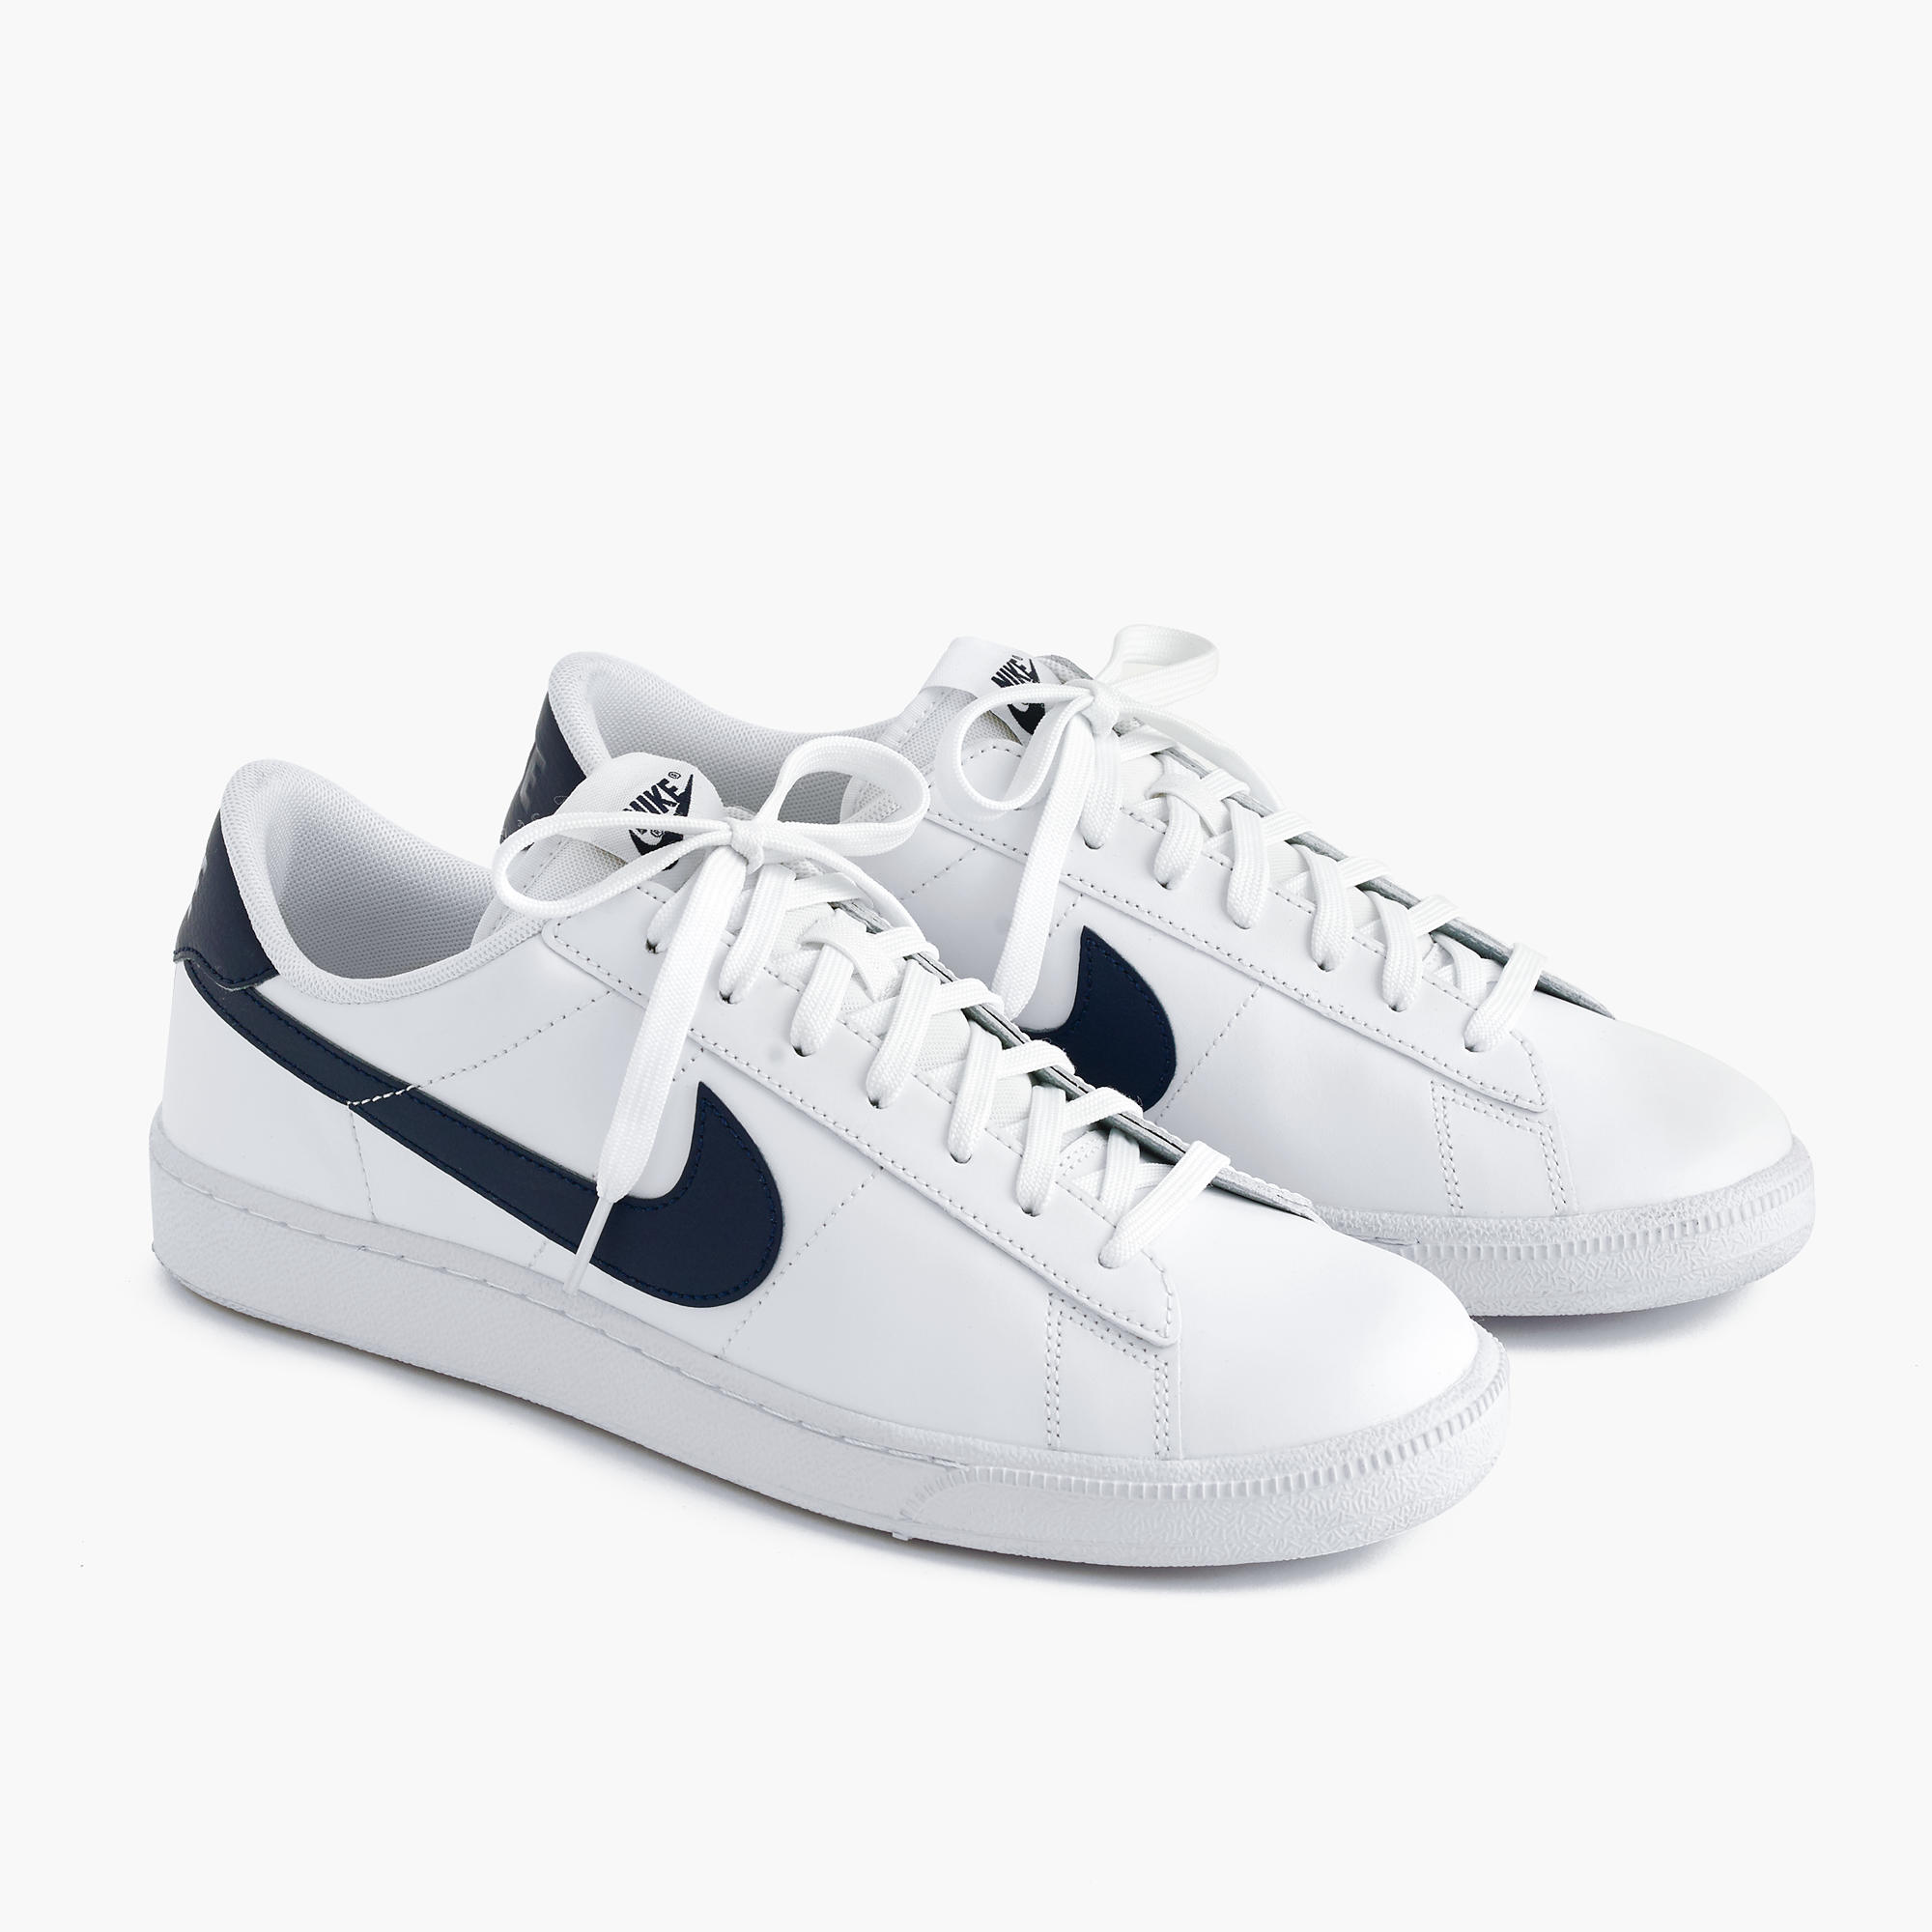 classic white nikes air nike shoes. Black Bedroom Furniture Sets. Home Design Ideas